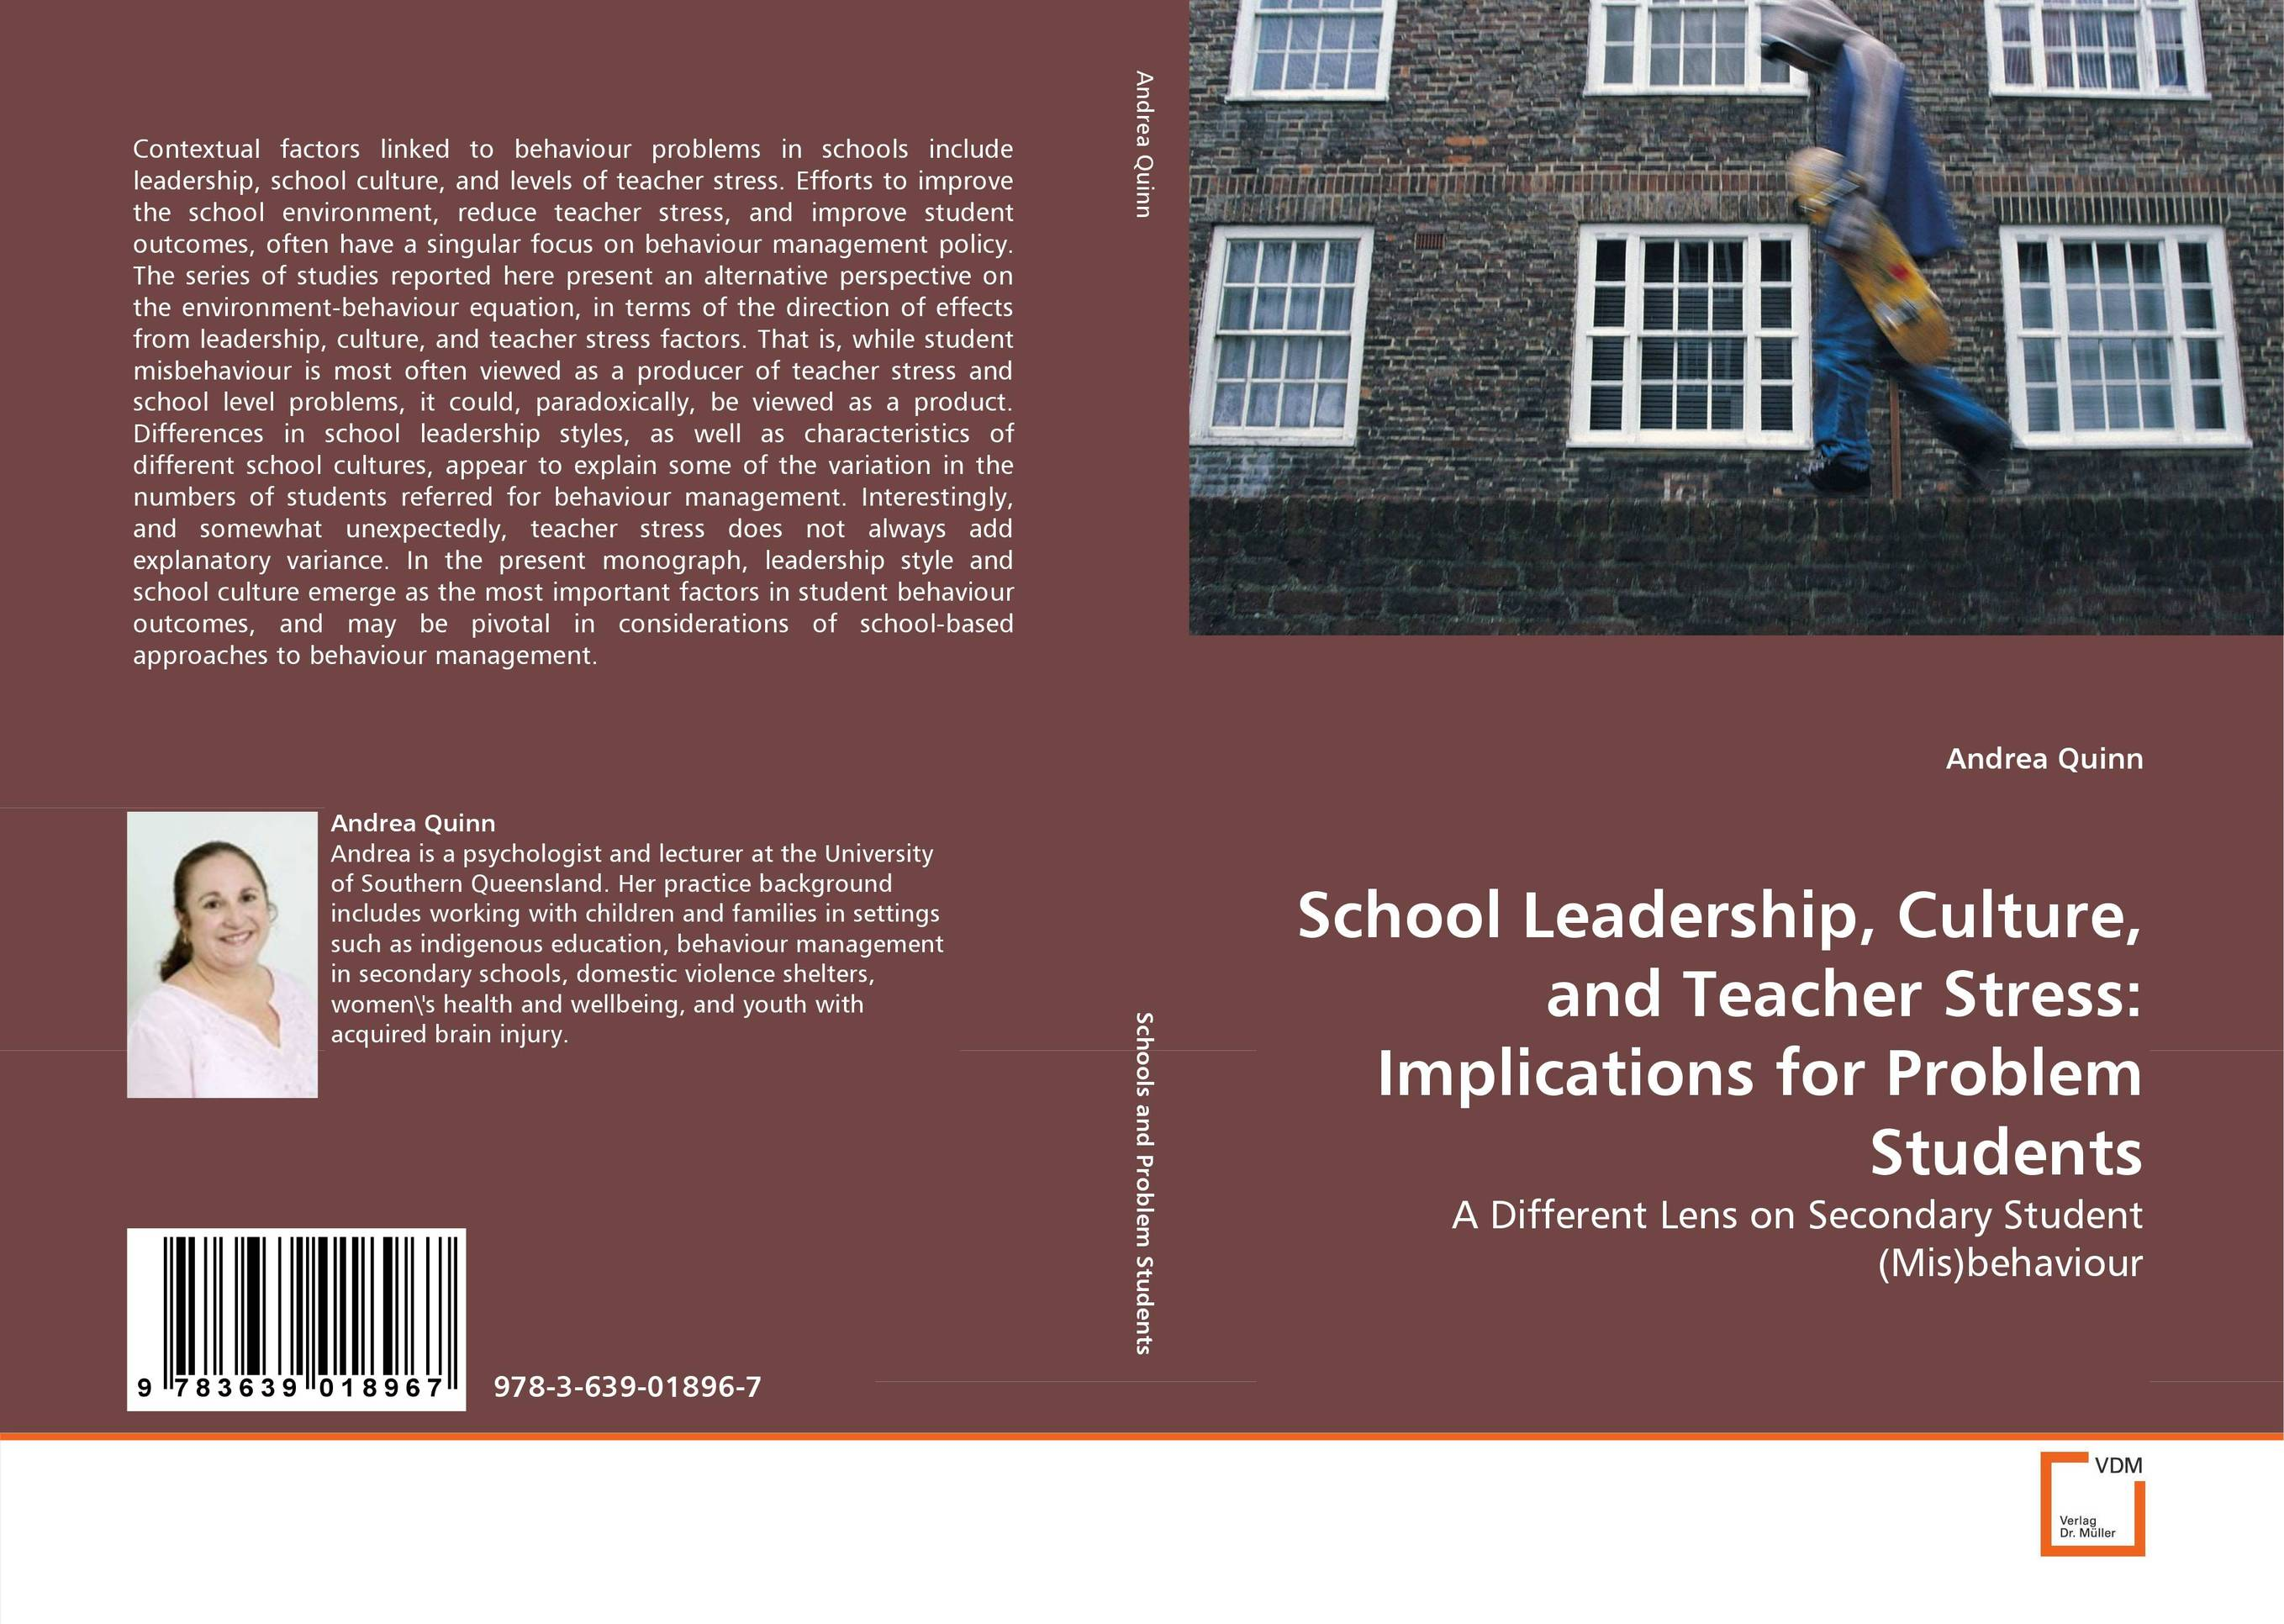 School Leadership, Culture, and Teacher Stress: Implications for Problem Students role of school leadership in promoting moral integrity among students